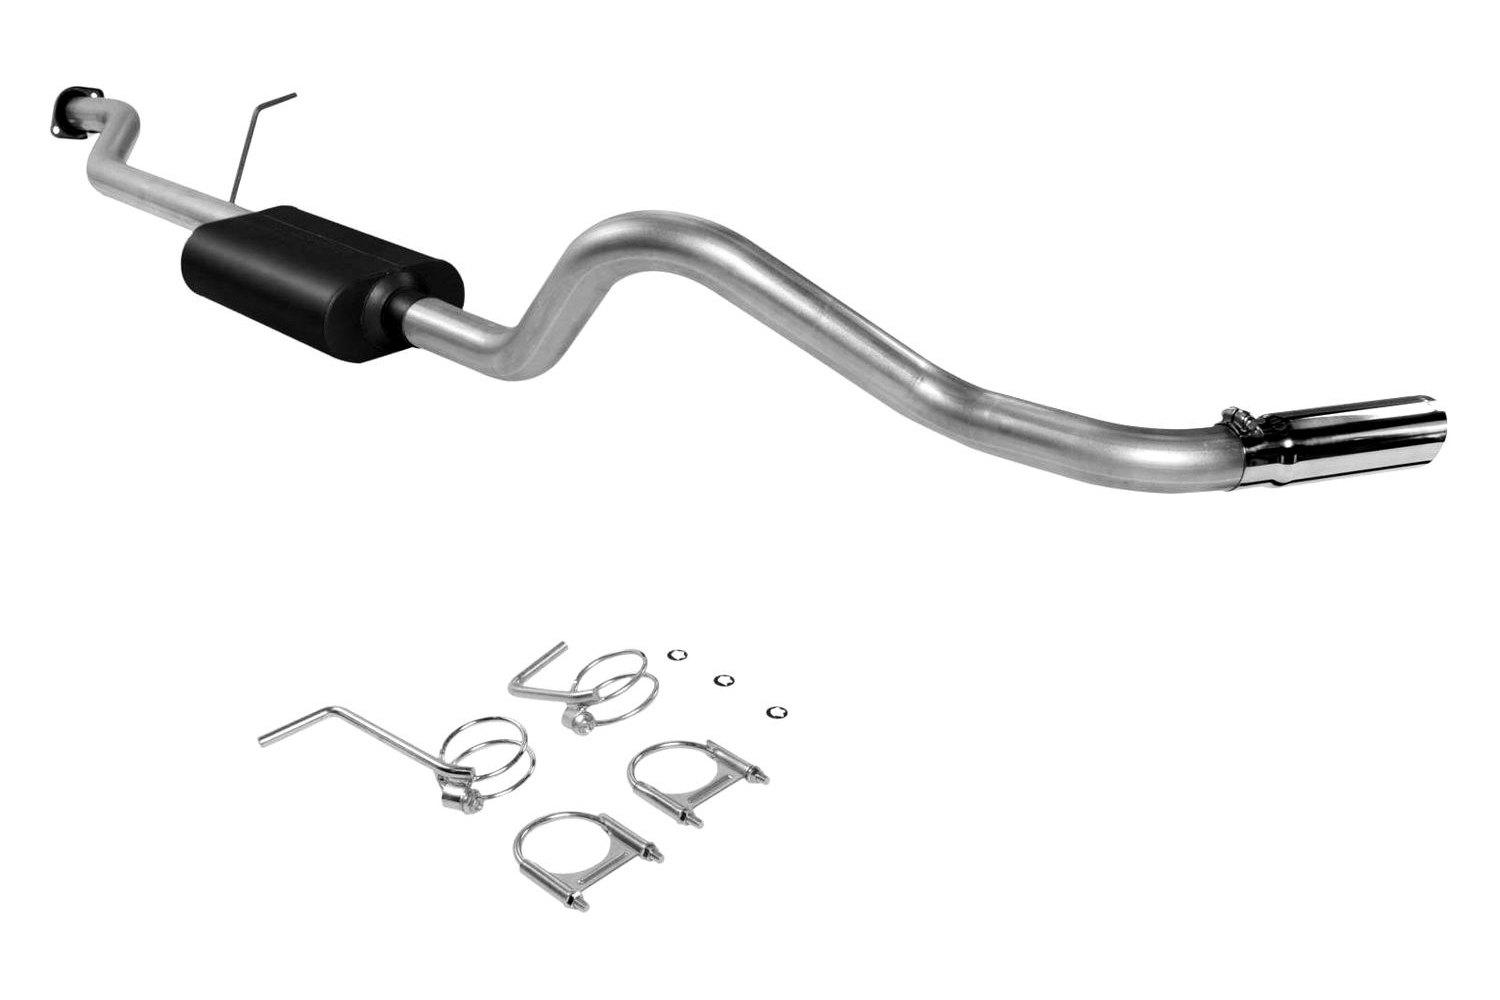 For Chevy Silverado Classic 07 Exhaust System Force